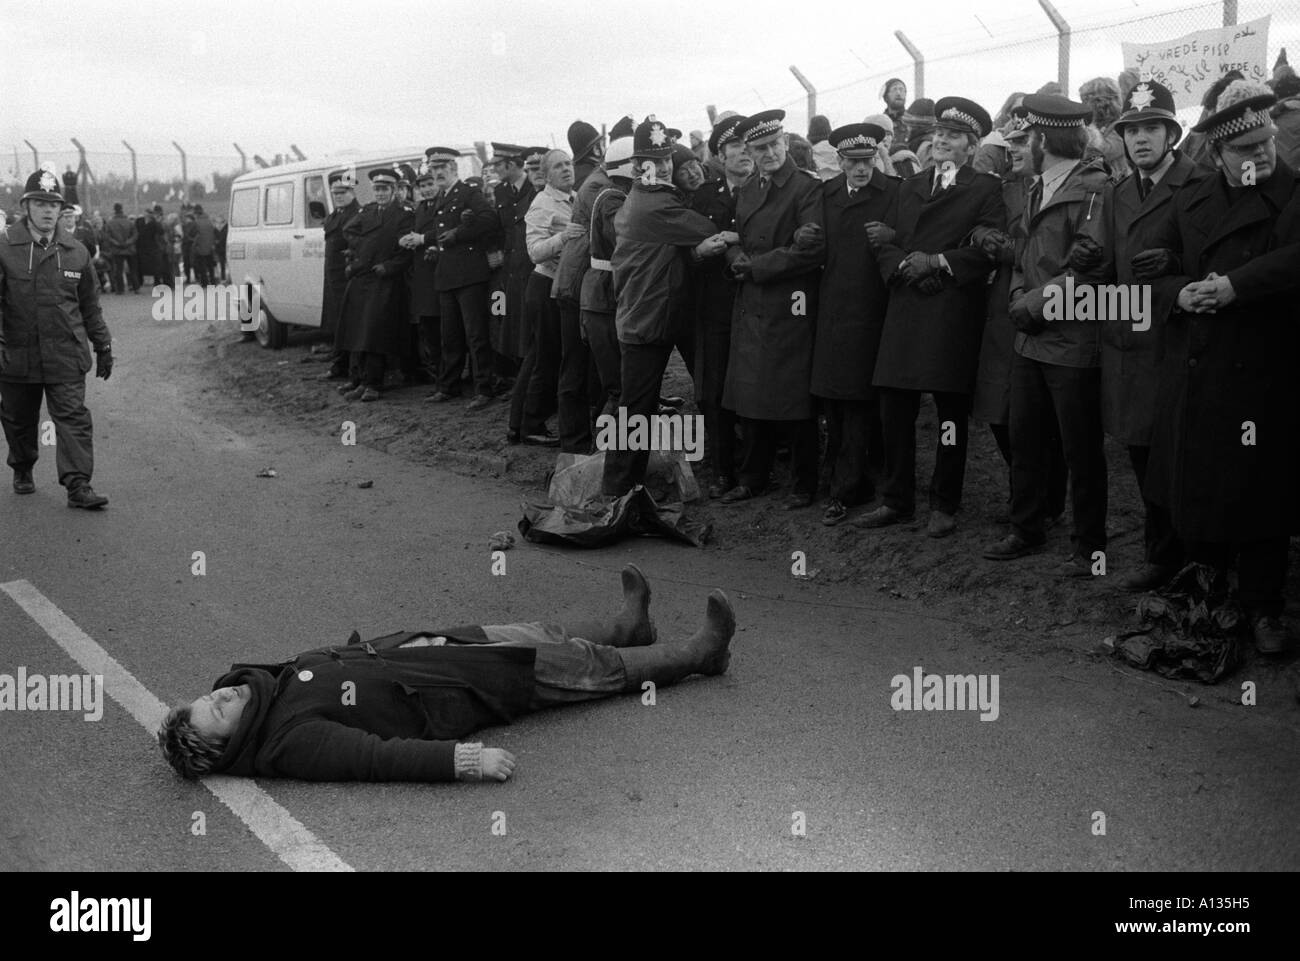 Blockade of USAF nuclear cruise missile air base at Greenham Common Berkshire England 1983 1980s UK HOMER SYKES Stock Photo